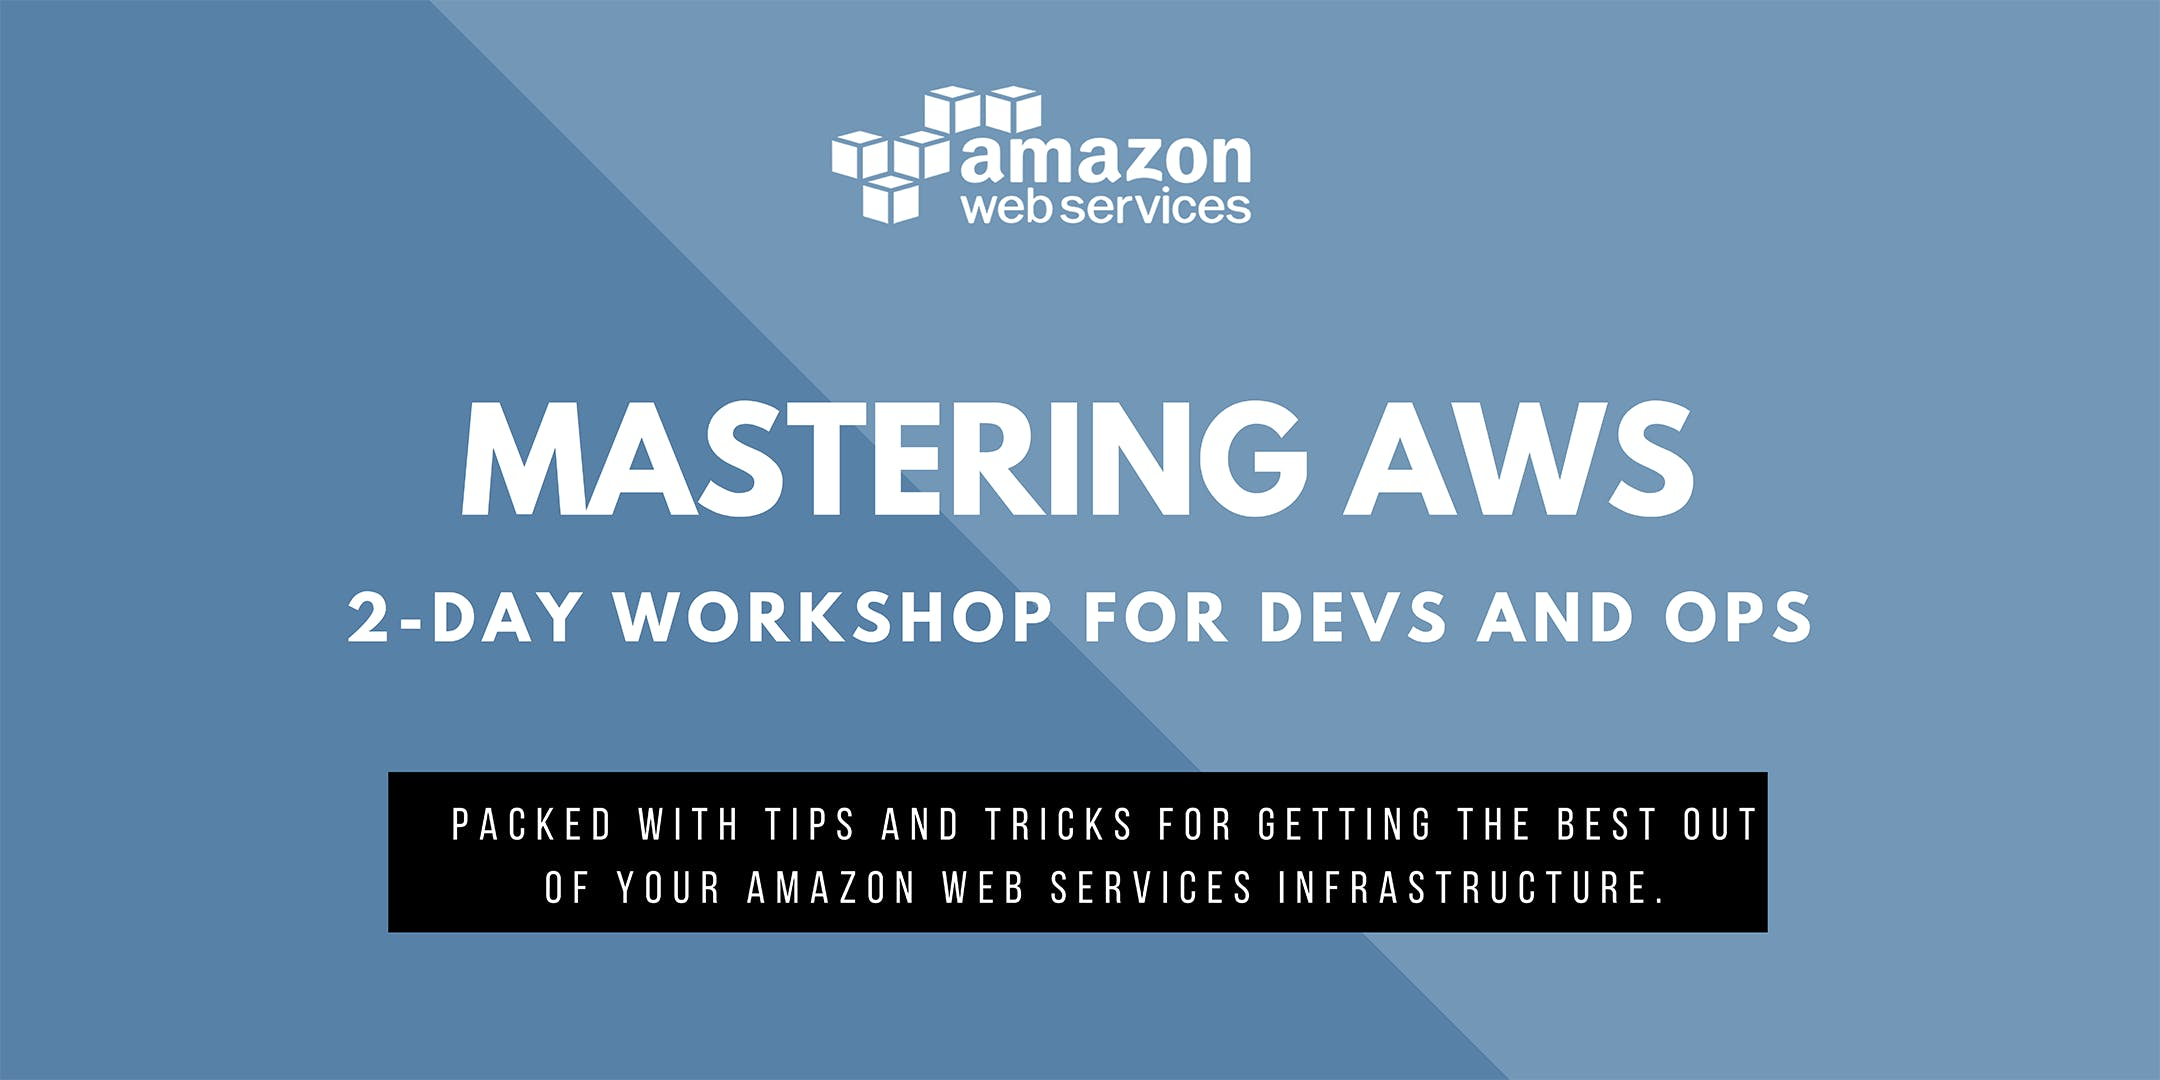 TOP Mastering Amazon Web Services (Budapest)